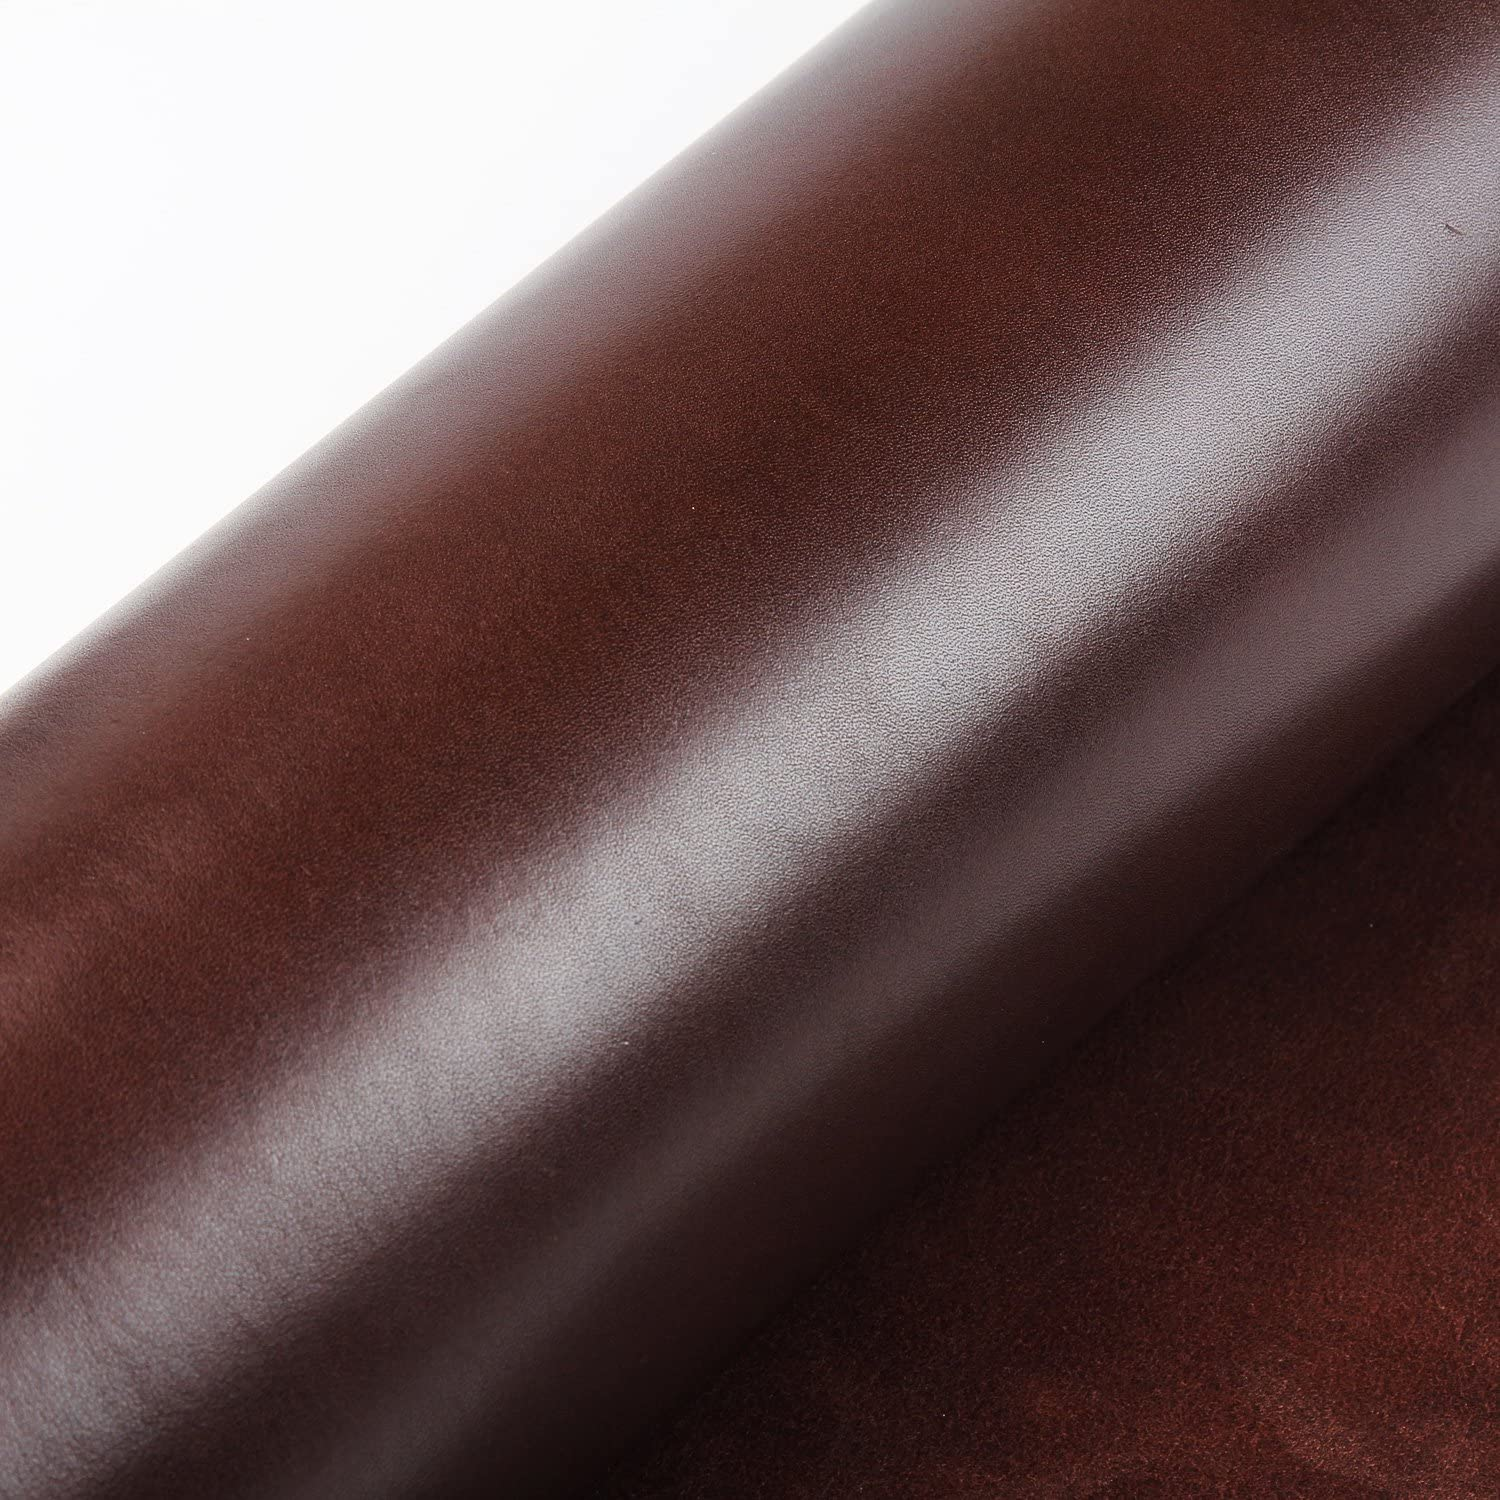 11.8x3.9 Veg-Tanned Cowhide Leather Piece for Tooling Crafting Hobby Workshop Medium Weight Pre-Cut 3.5 to 4.0 mm